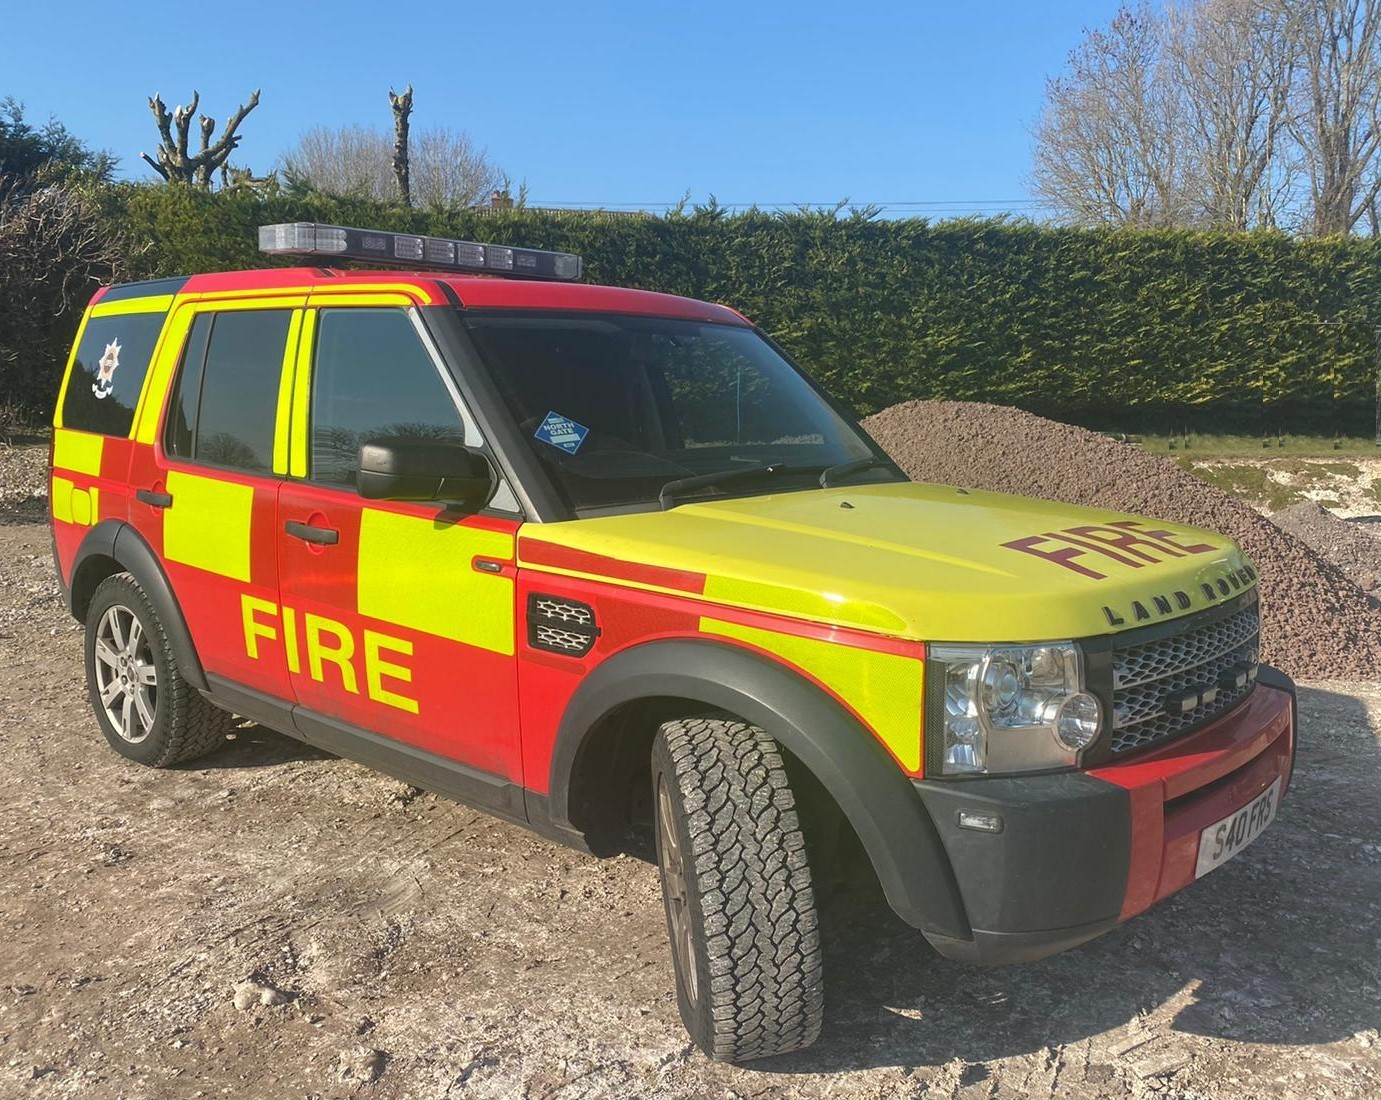 Command Support Vehicle Sharp Fire and Rescue Service 1